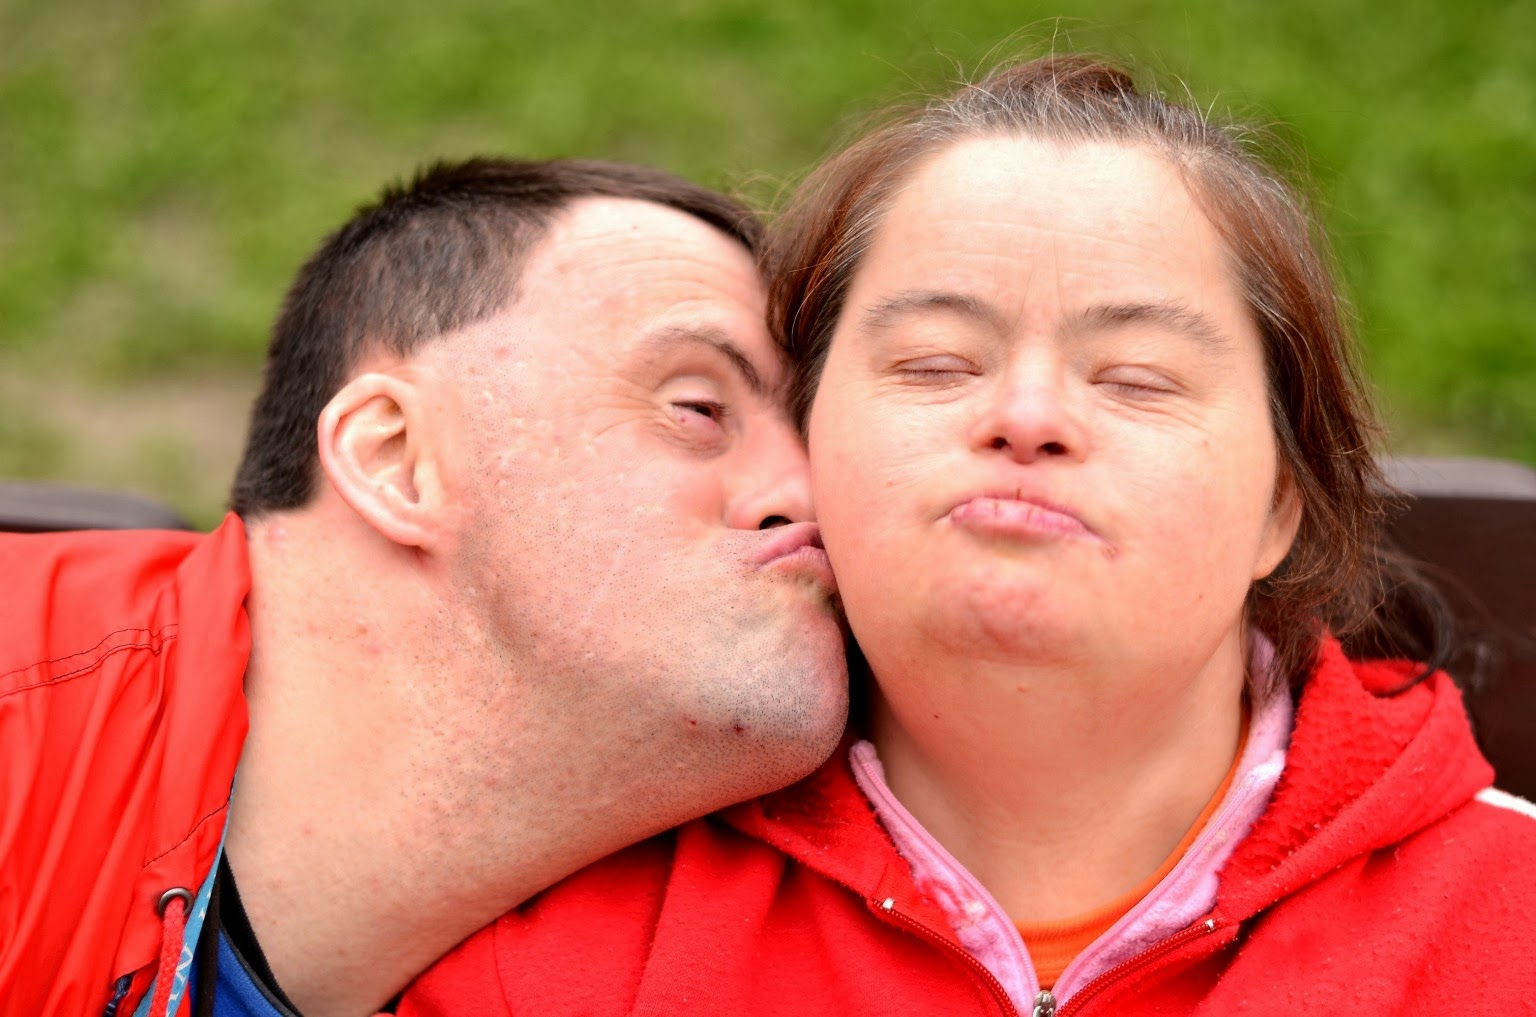 Really. join Adults with downs syndrome